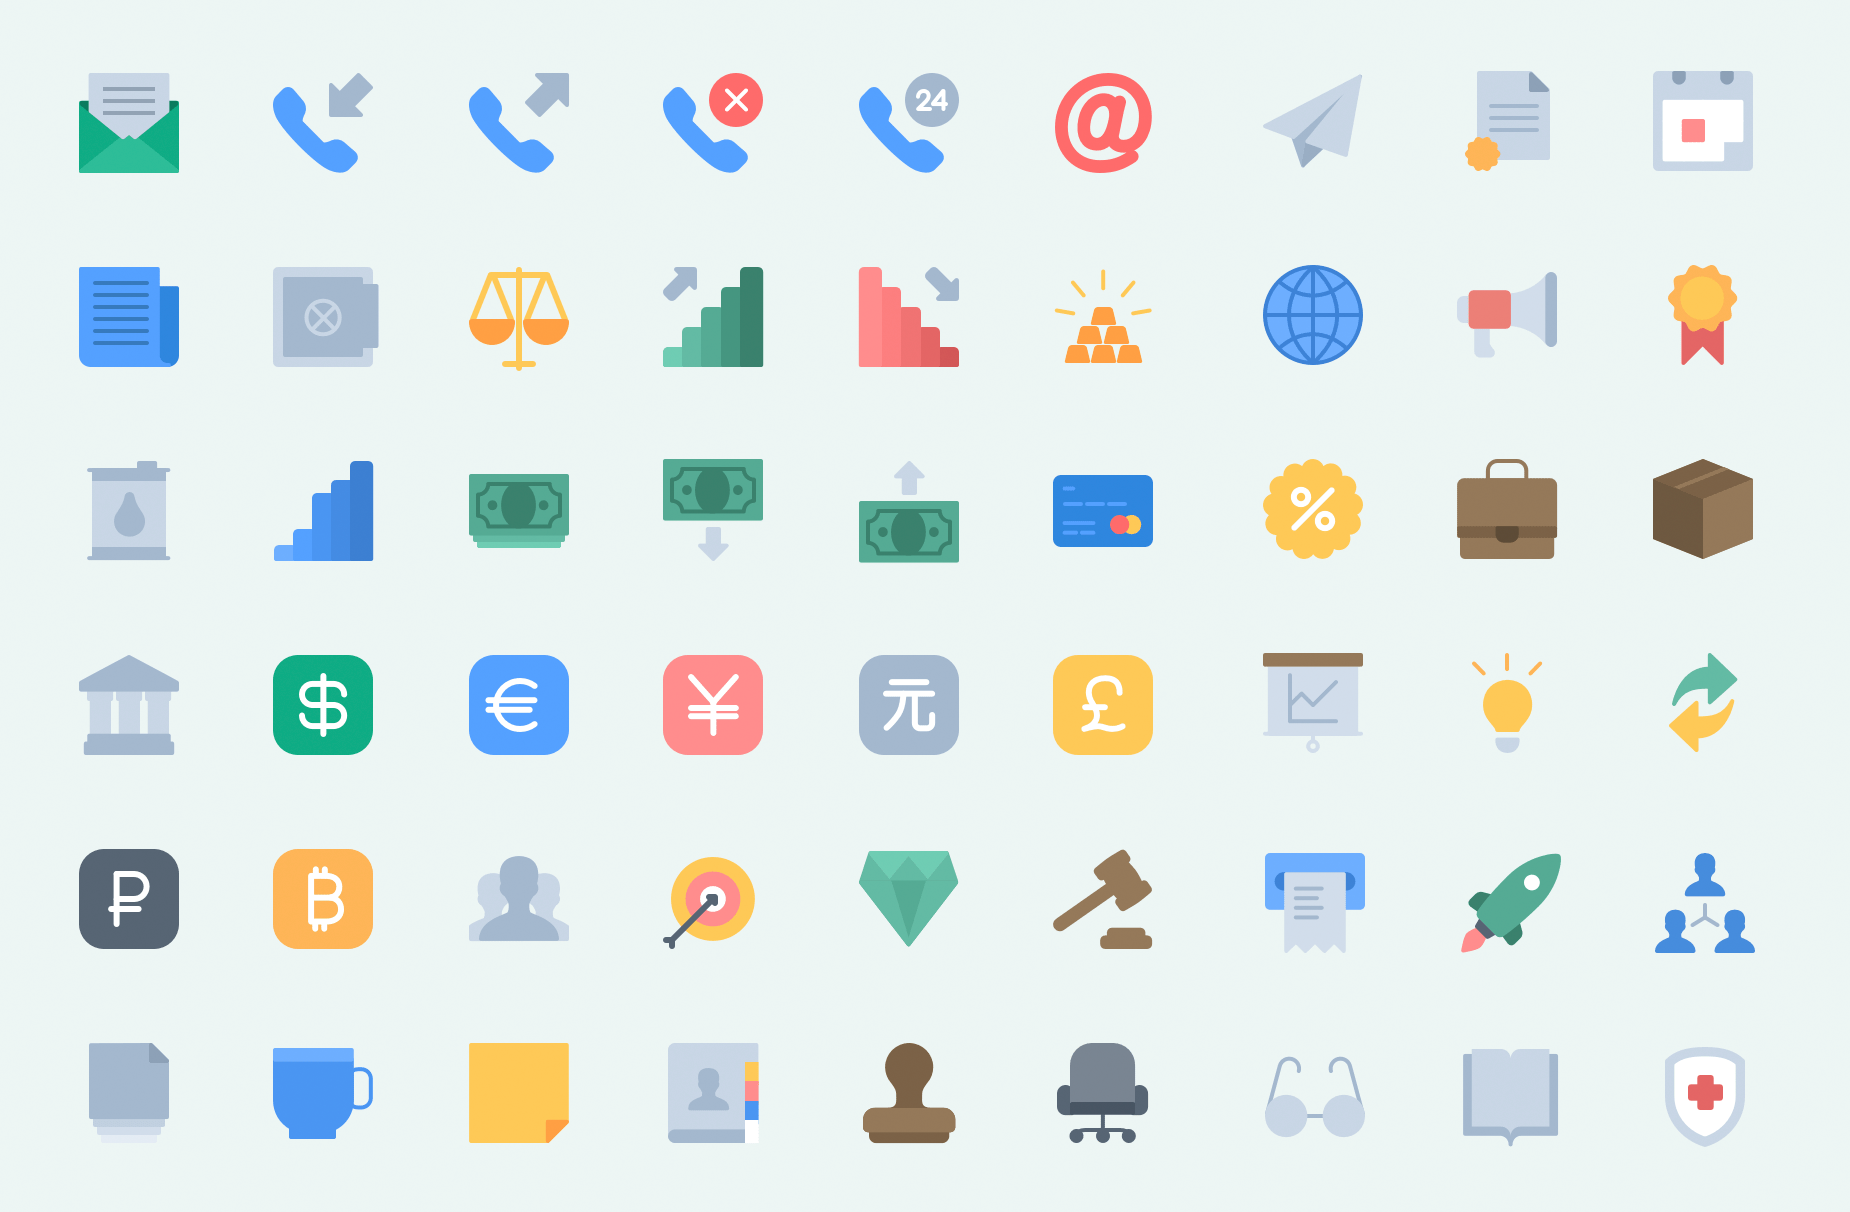 Essentials icon pack: The most commonly used icons in one place